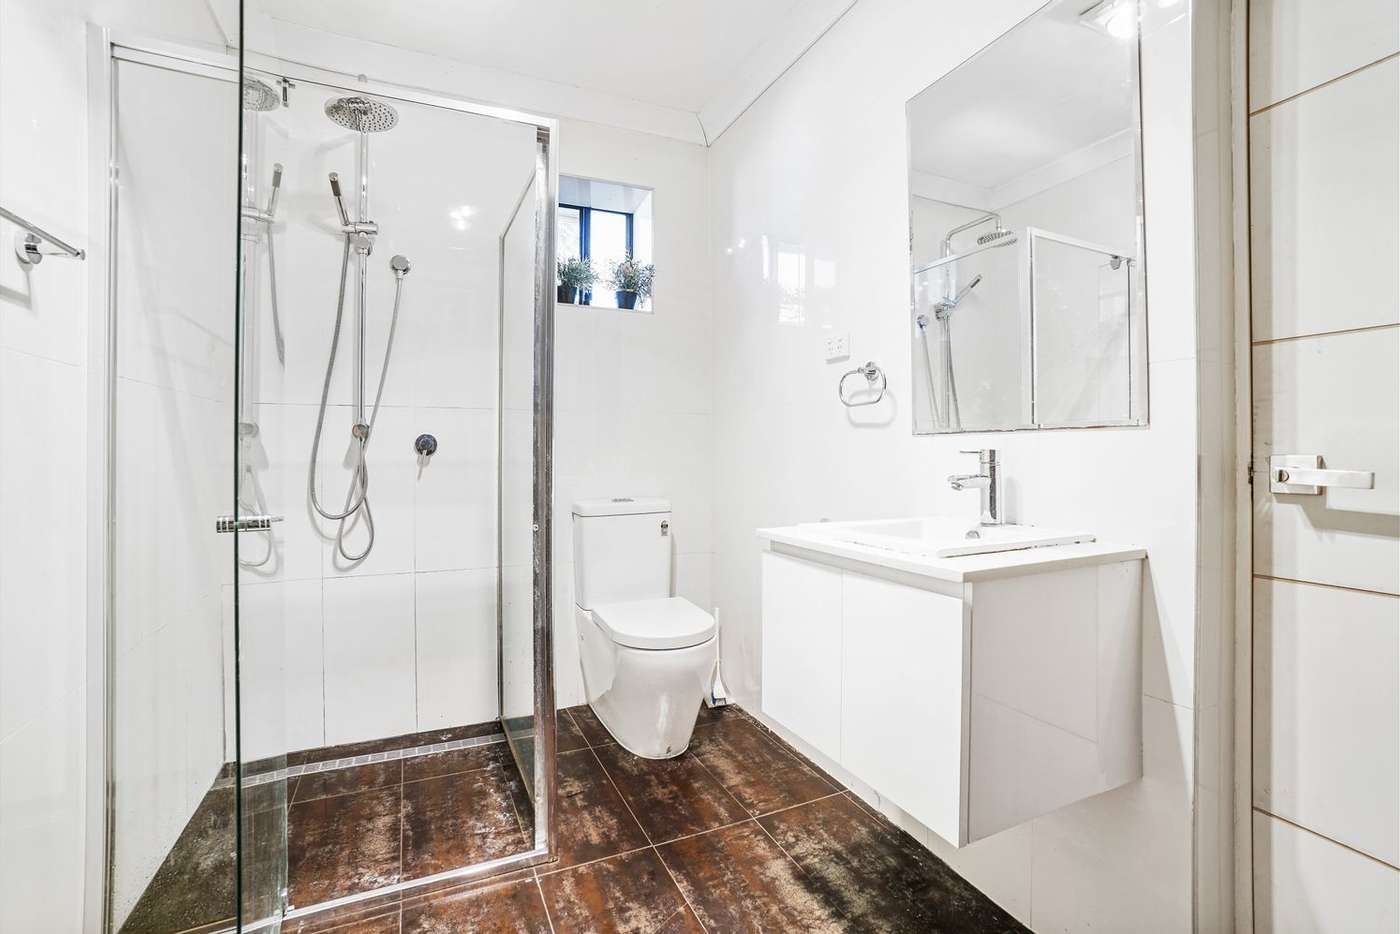 Sixth view of Homely house listing, 24A Lamonerie Street, Toongabbie NSW 2146